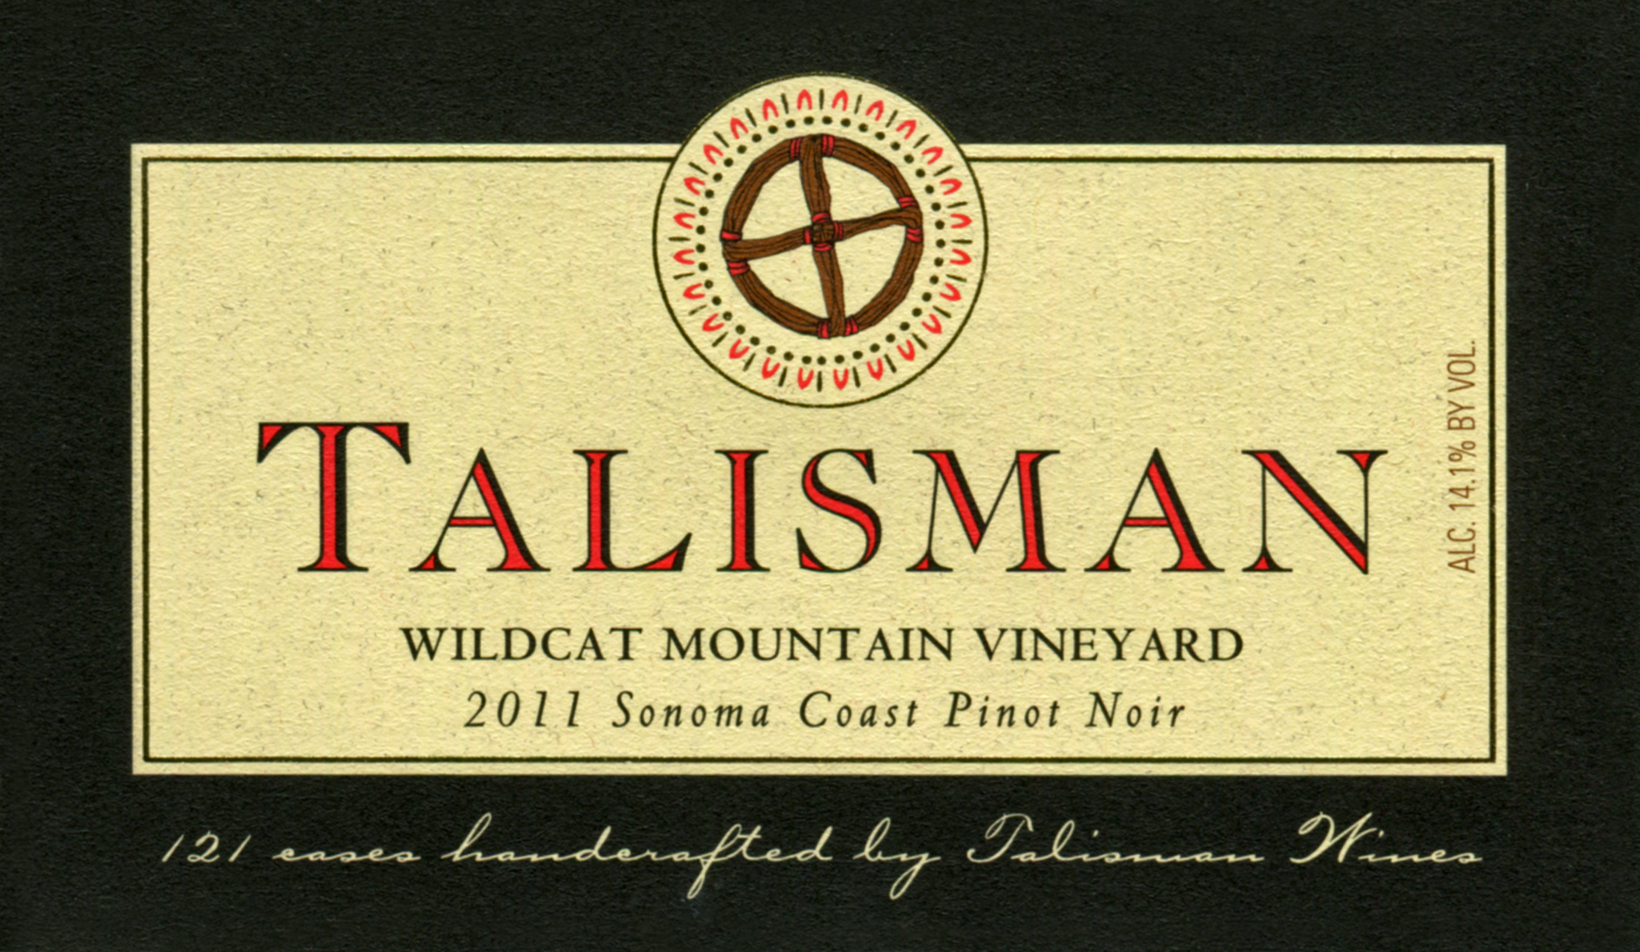 Product Image for 2011 Wildcat Mountain Vineyard, Sonoma Coast